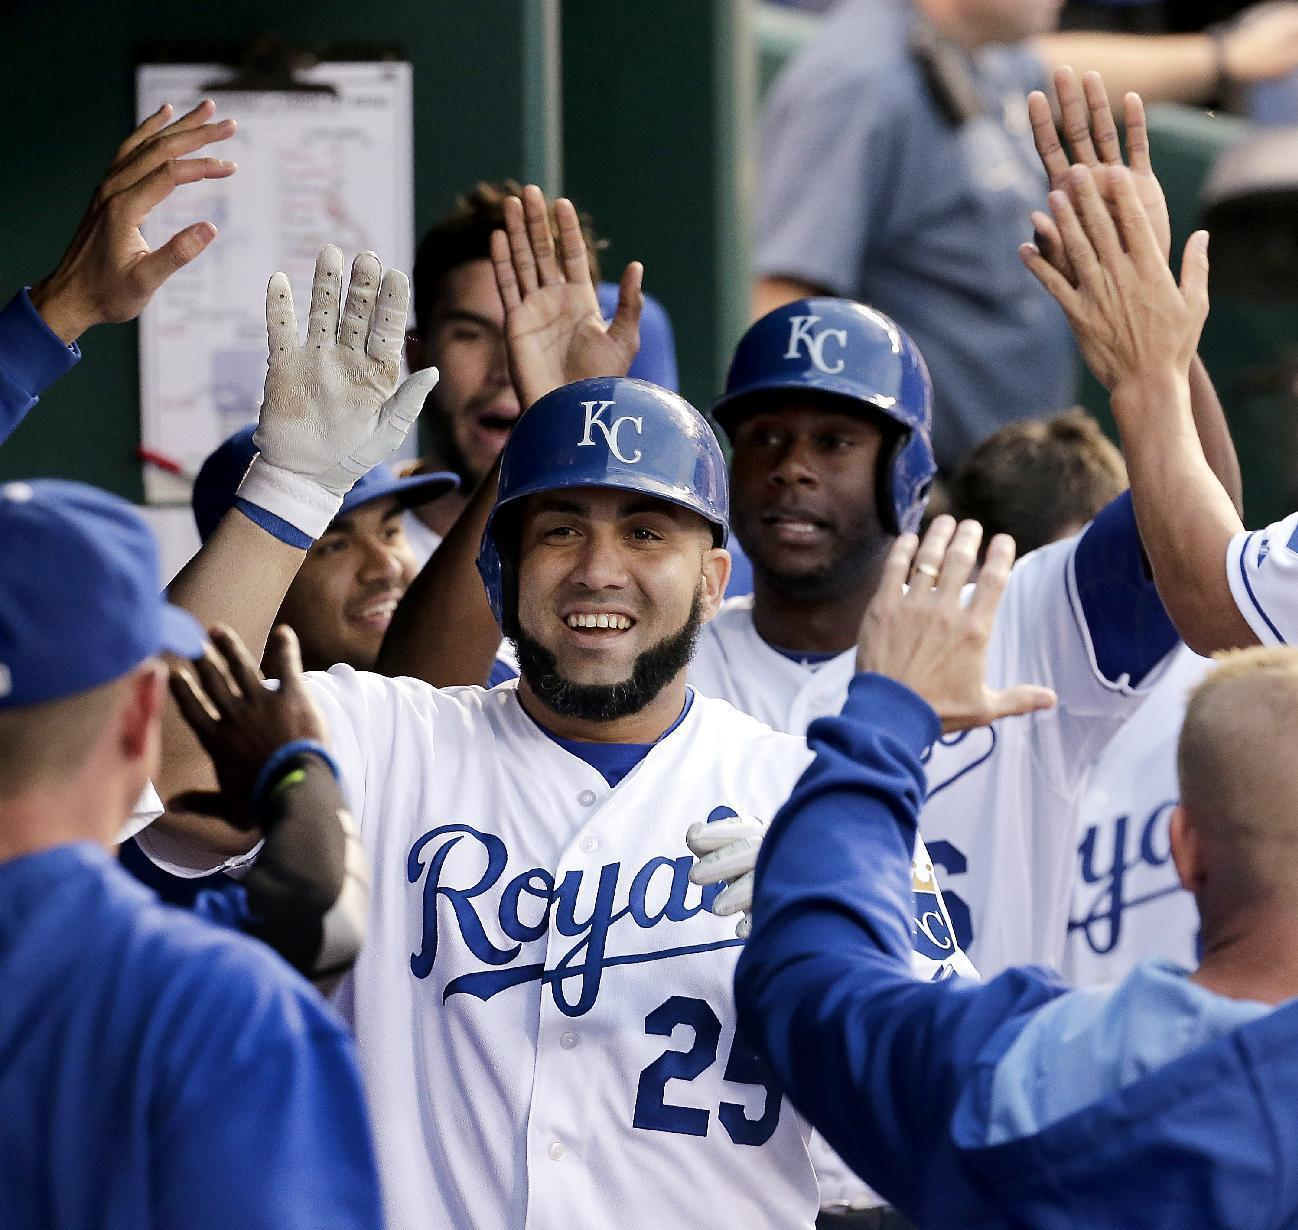 Morales homers twice, drives in 5 runs in Royals' victory